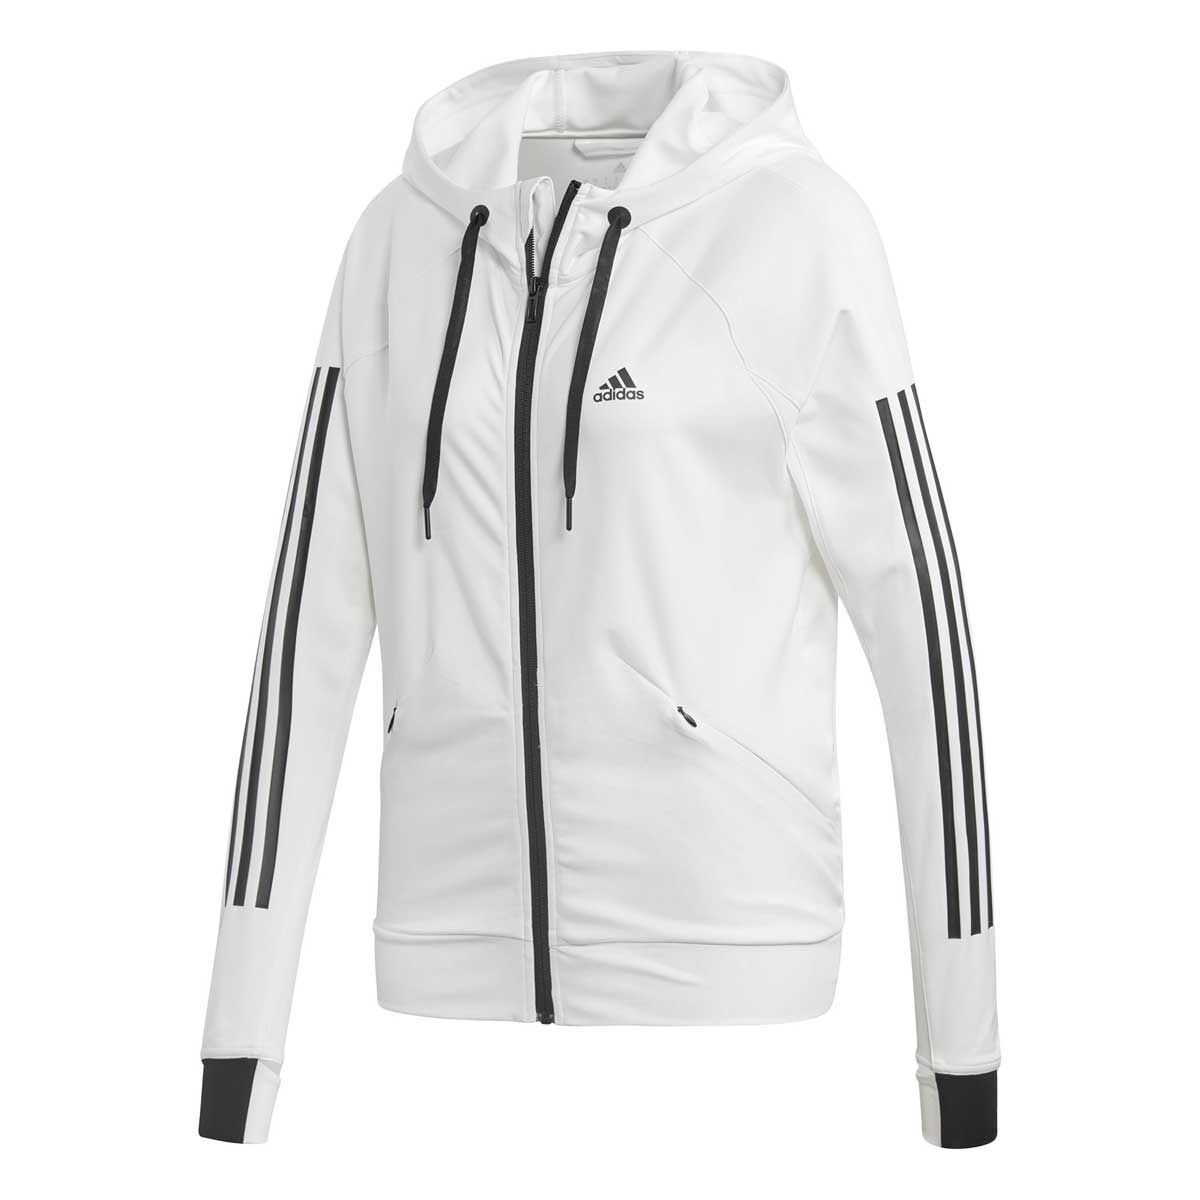 Discounts For Great Savings Adidas Women Performance Jackets